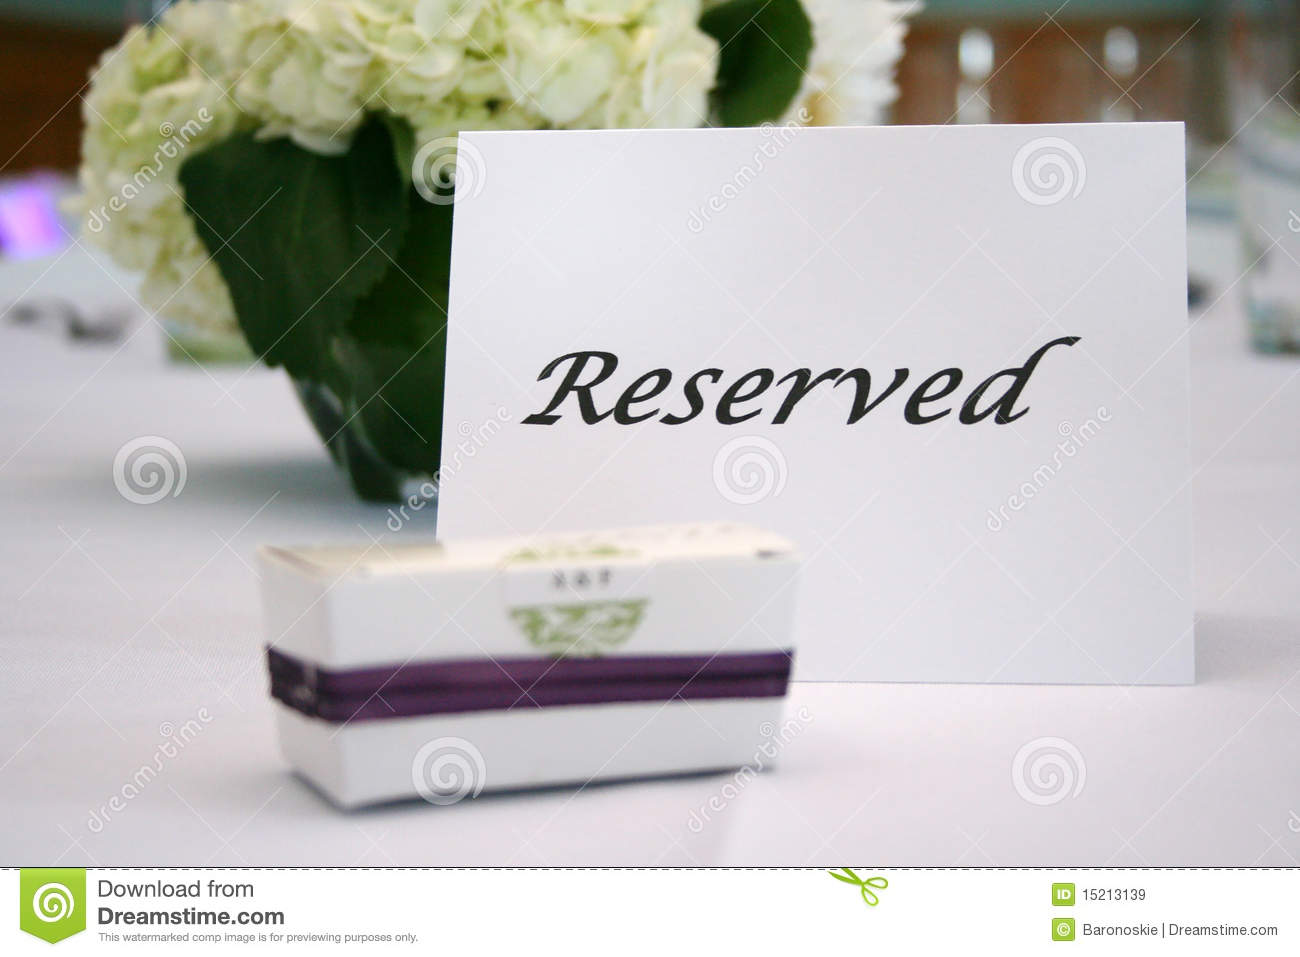 Reserved table card royalty free stock images image for Table 52 reservations